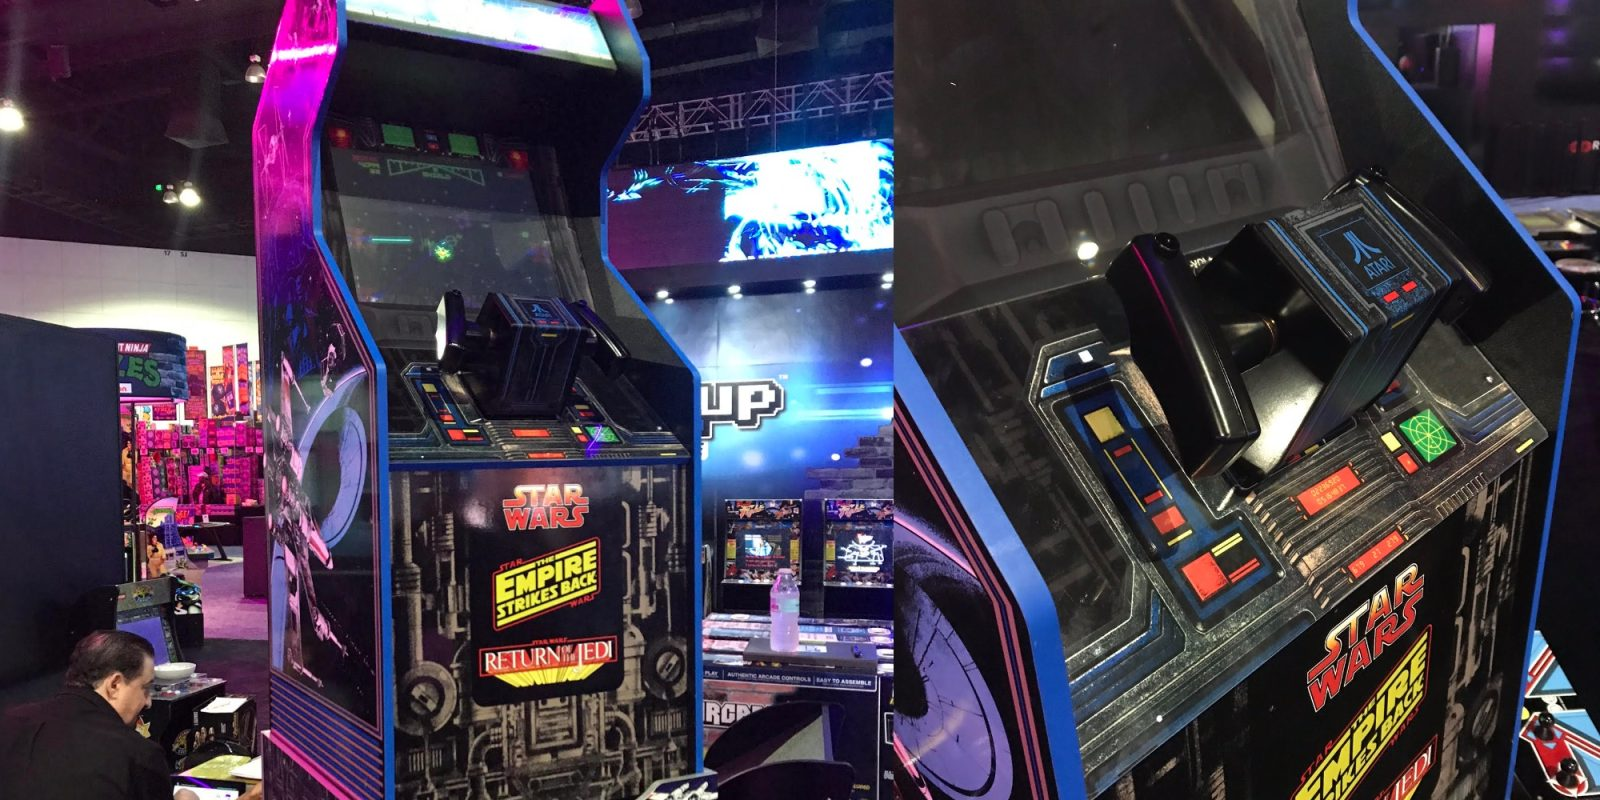 Arcade1Up Star Wars 3/4th-scale Arcade Cabinets debut at E3 - 9to5Toys